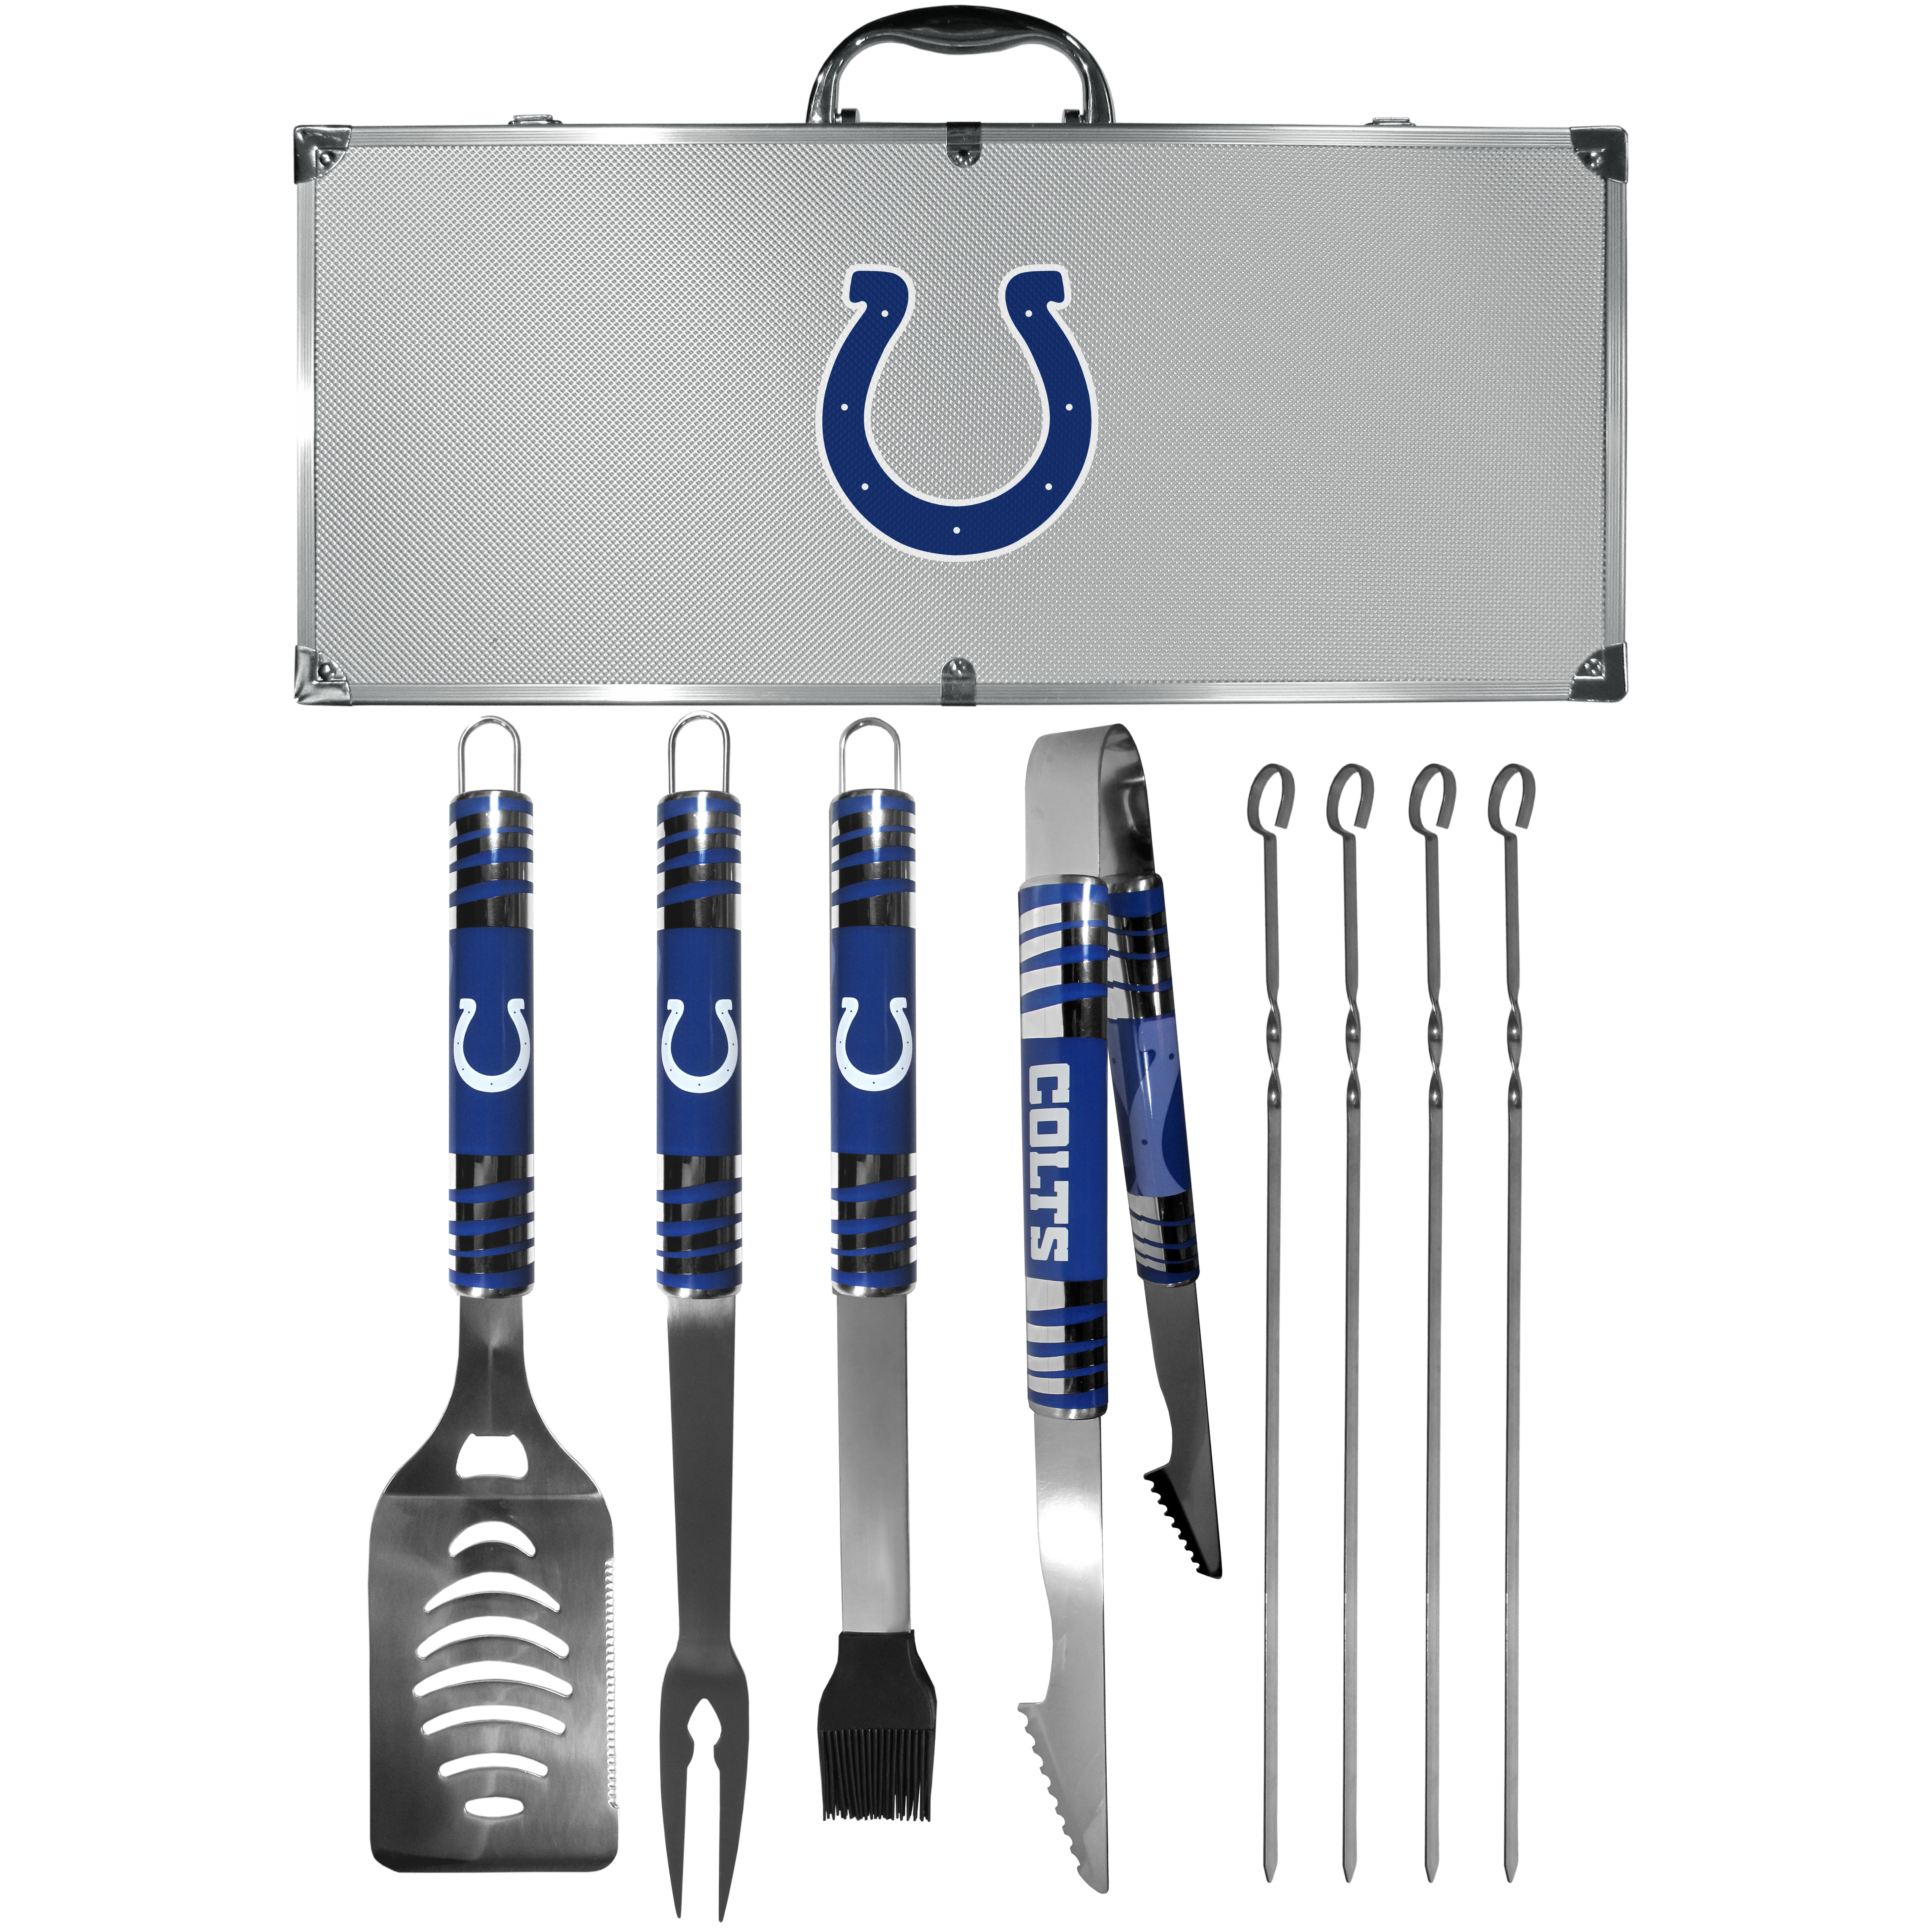 Indianapolis Colts 8 pc Tailgater BBQ Set - This is the ultimate Indianapolis Colts tailgate accessory! The high quality, 420 grade stainless steel tools are durable and well-made enough to make even the pickiest grill master smile. This complete grill accessory kit includes; 4 skewers, spatula with bottle opener and serrated knife edge, basting brush, tongs and a fork. The 18 inch metal carrying case is perfect for great outdoor use making grilling an ease while camping, tailgating or while having a game day party on your patio. The tools are 17 inches long and feature vivid team graphics. The metal case features a large team emblem with exceptional detail. This high-end men's gift is sure to be a hit as a present on Father's Day or Christmas.